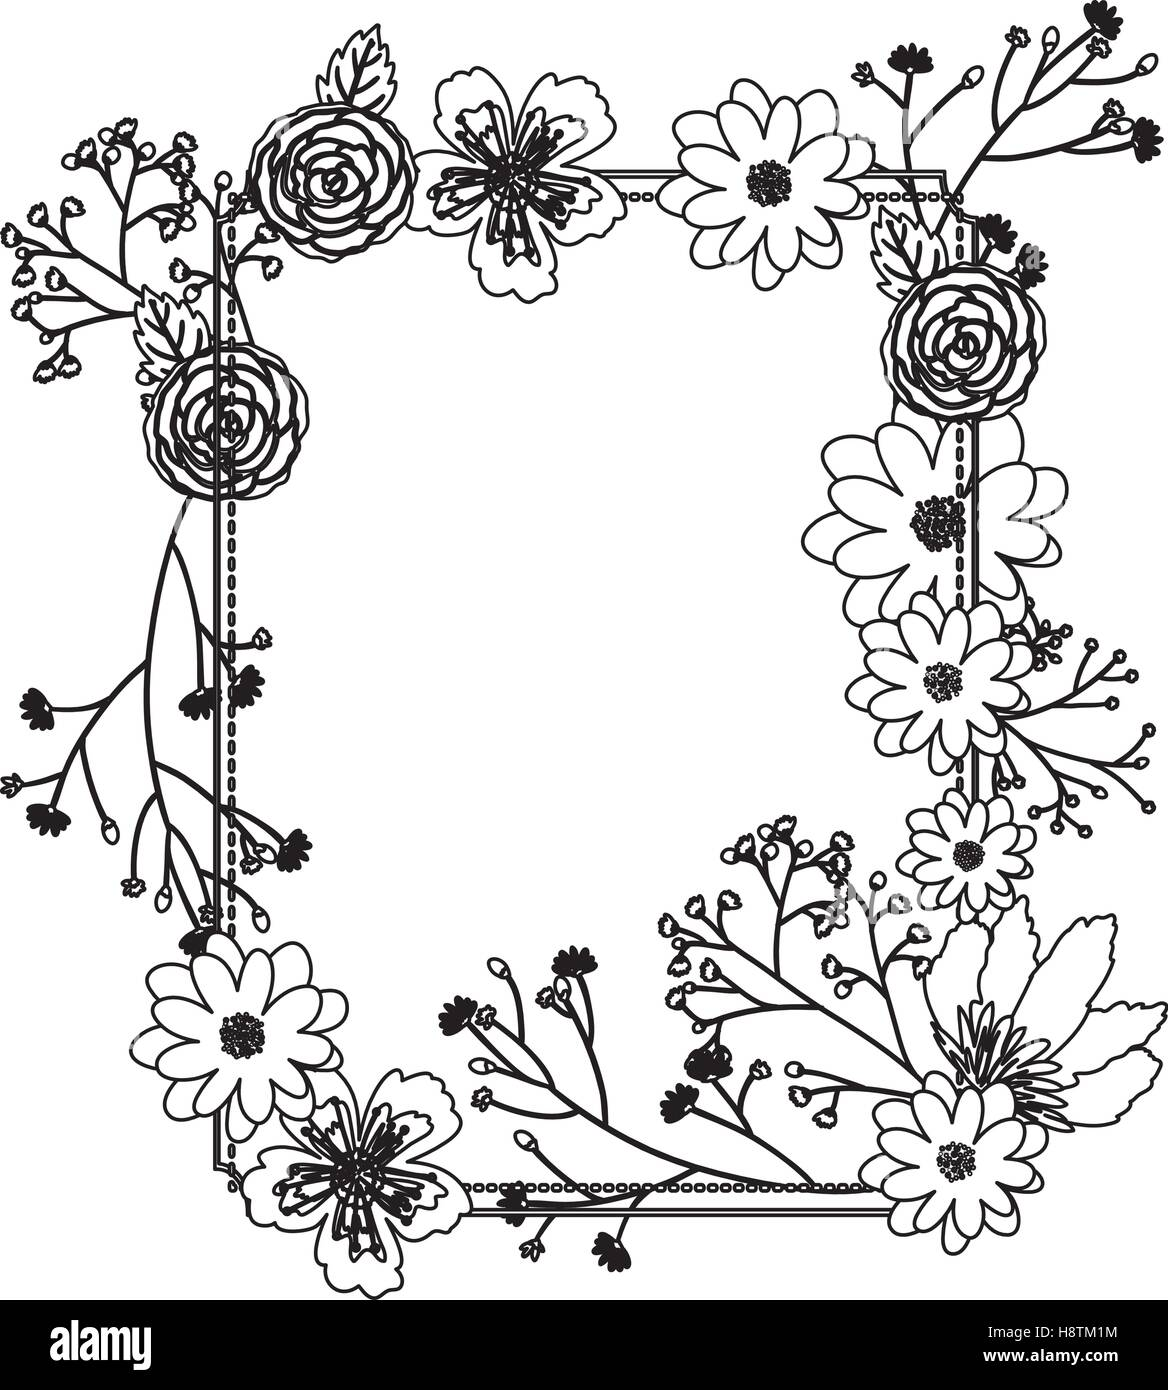 Flowers Frame Icon Decoration Rustic Garden Floral Nature Plant And Spring Theme Isolated Design Vector Illustration